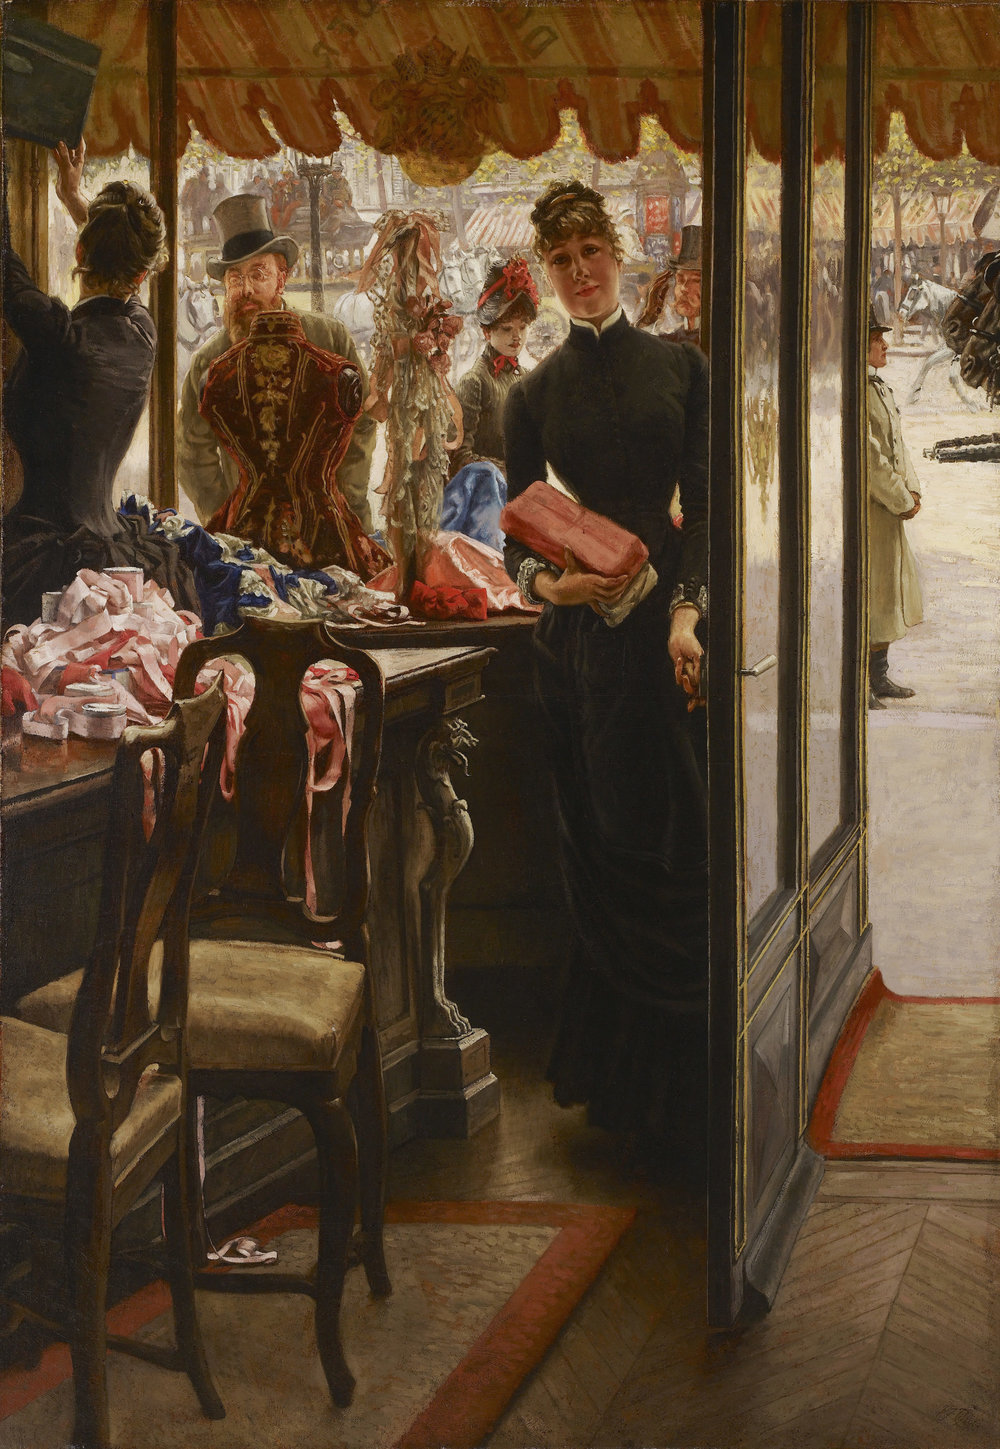 James Tissot, The Shop Girl